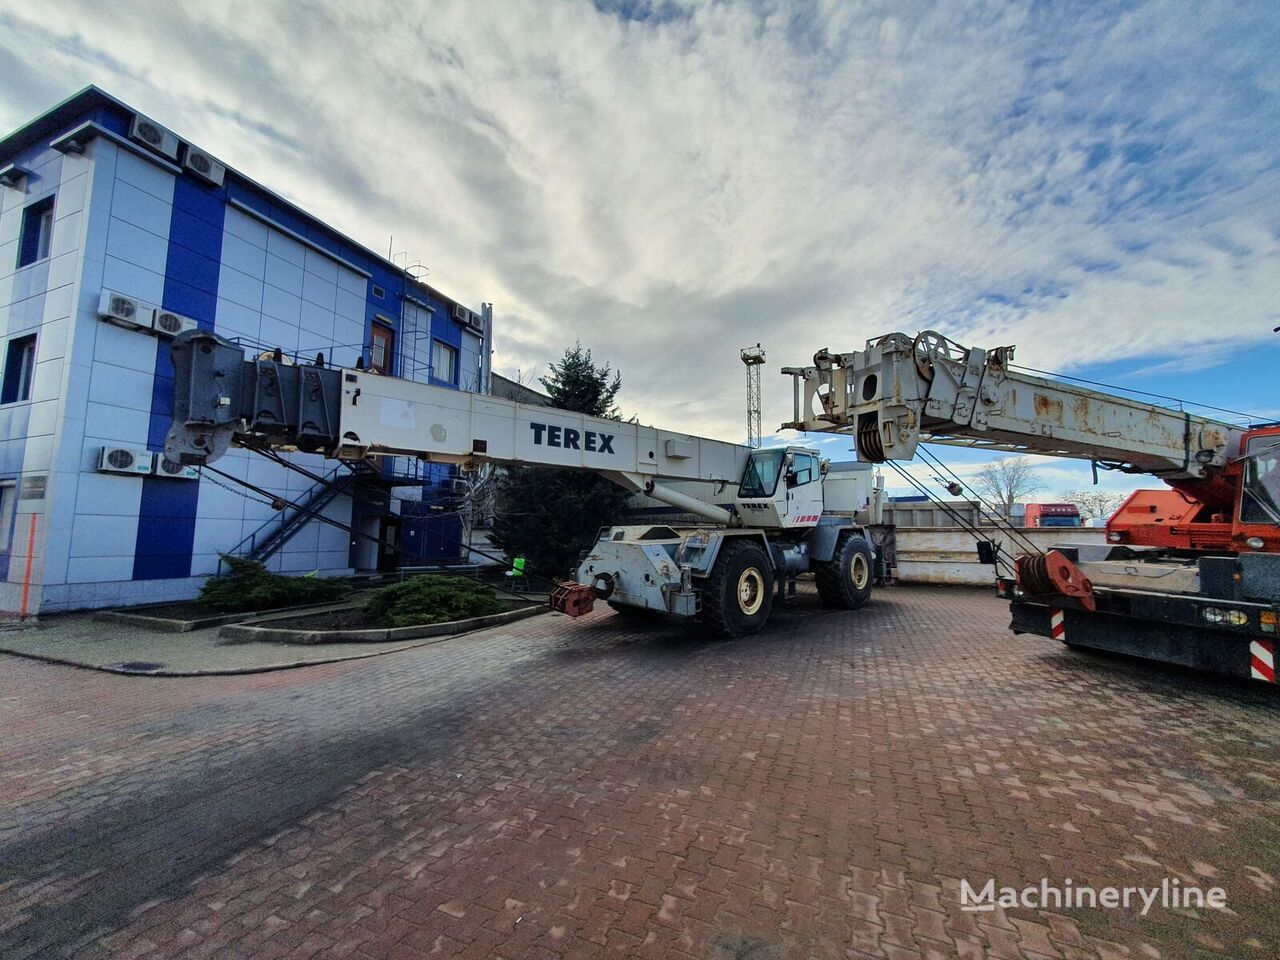 TEREX RT450 mobile crane